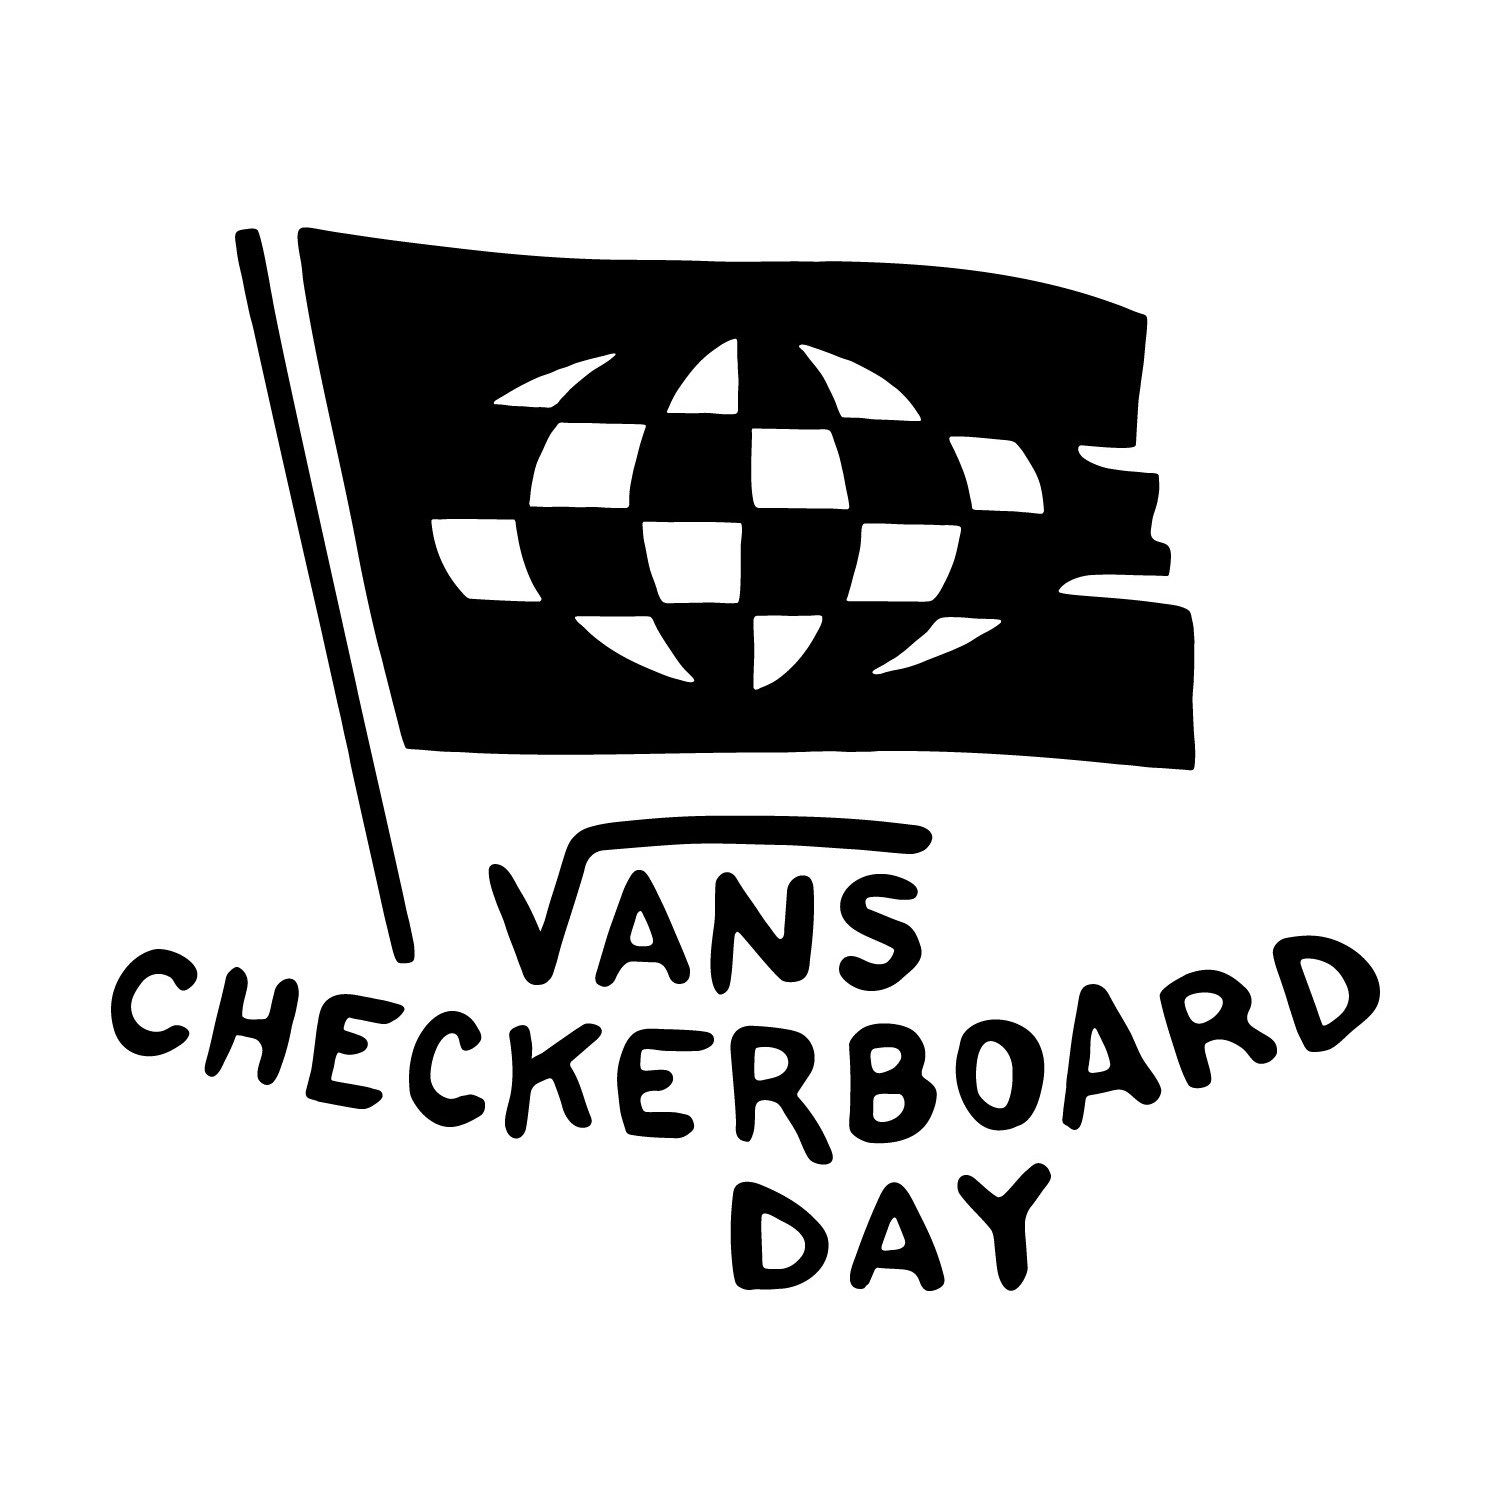 CHECKERBOARD DAY